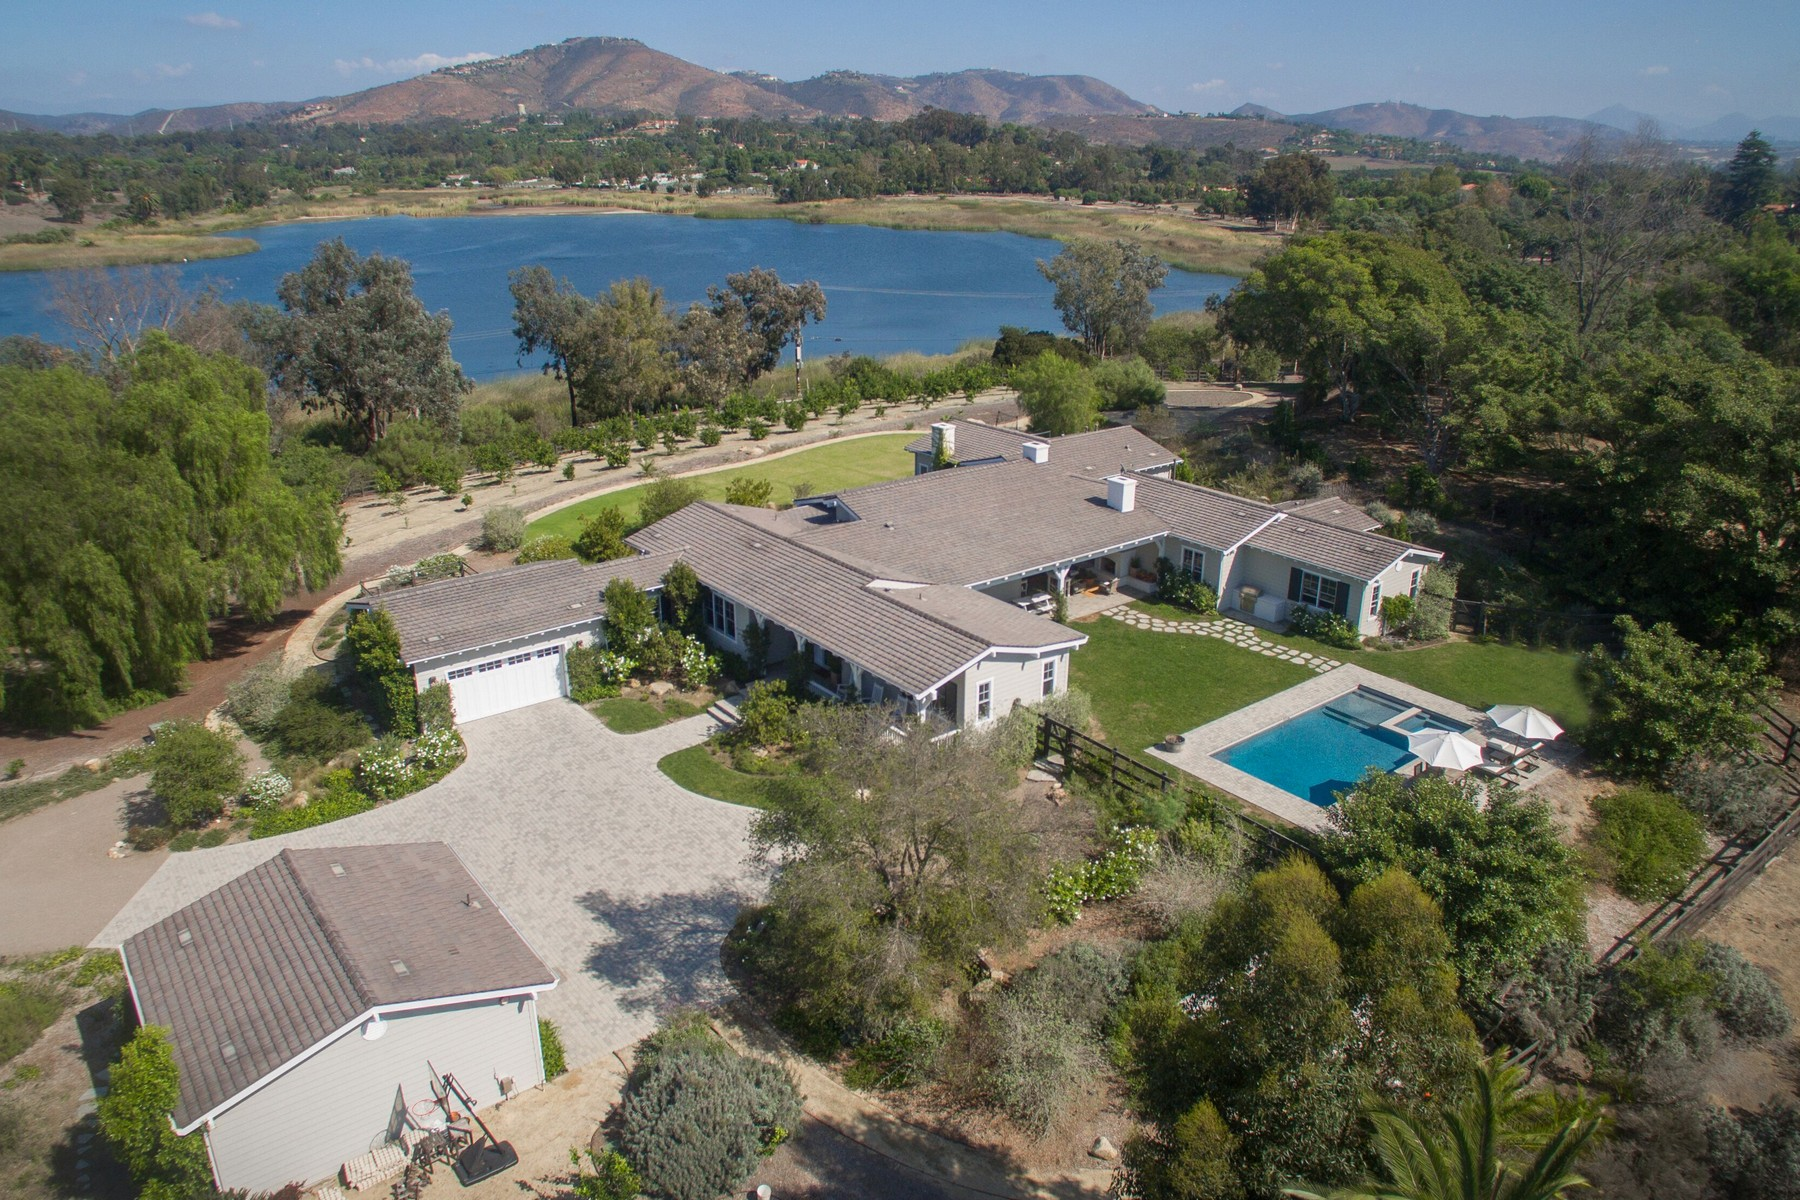 Single Family Home for Sale at 6337 El Montevideo Rancho Santa Fe, California 92067 United States